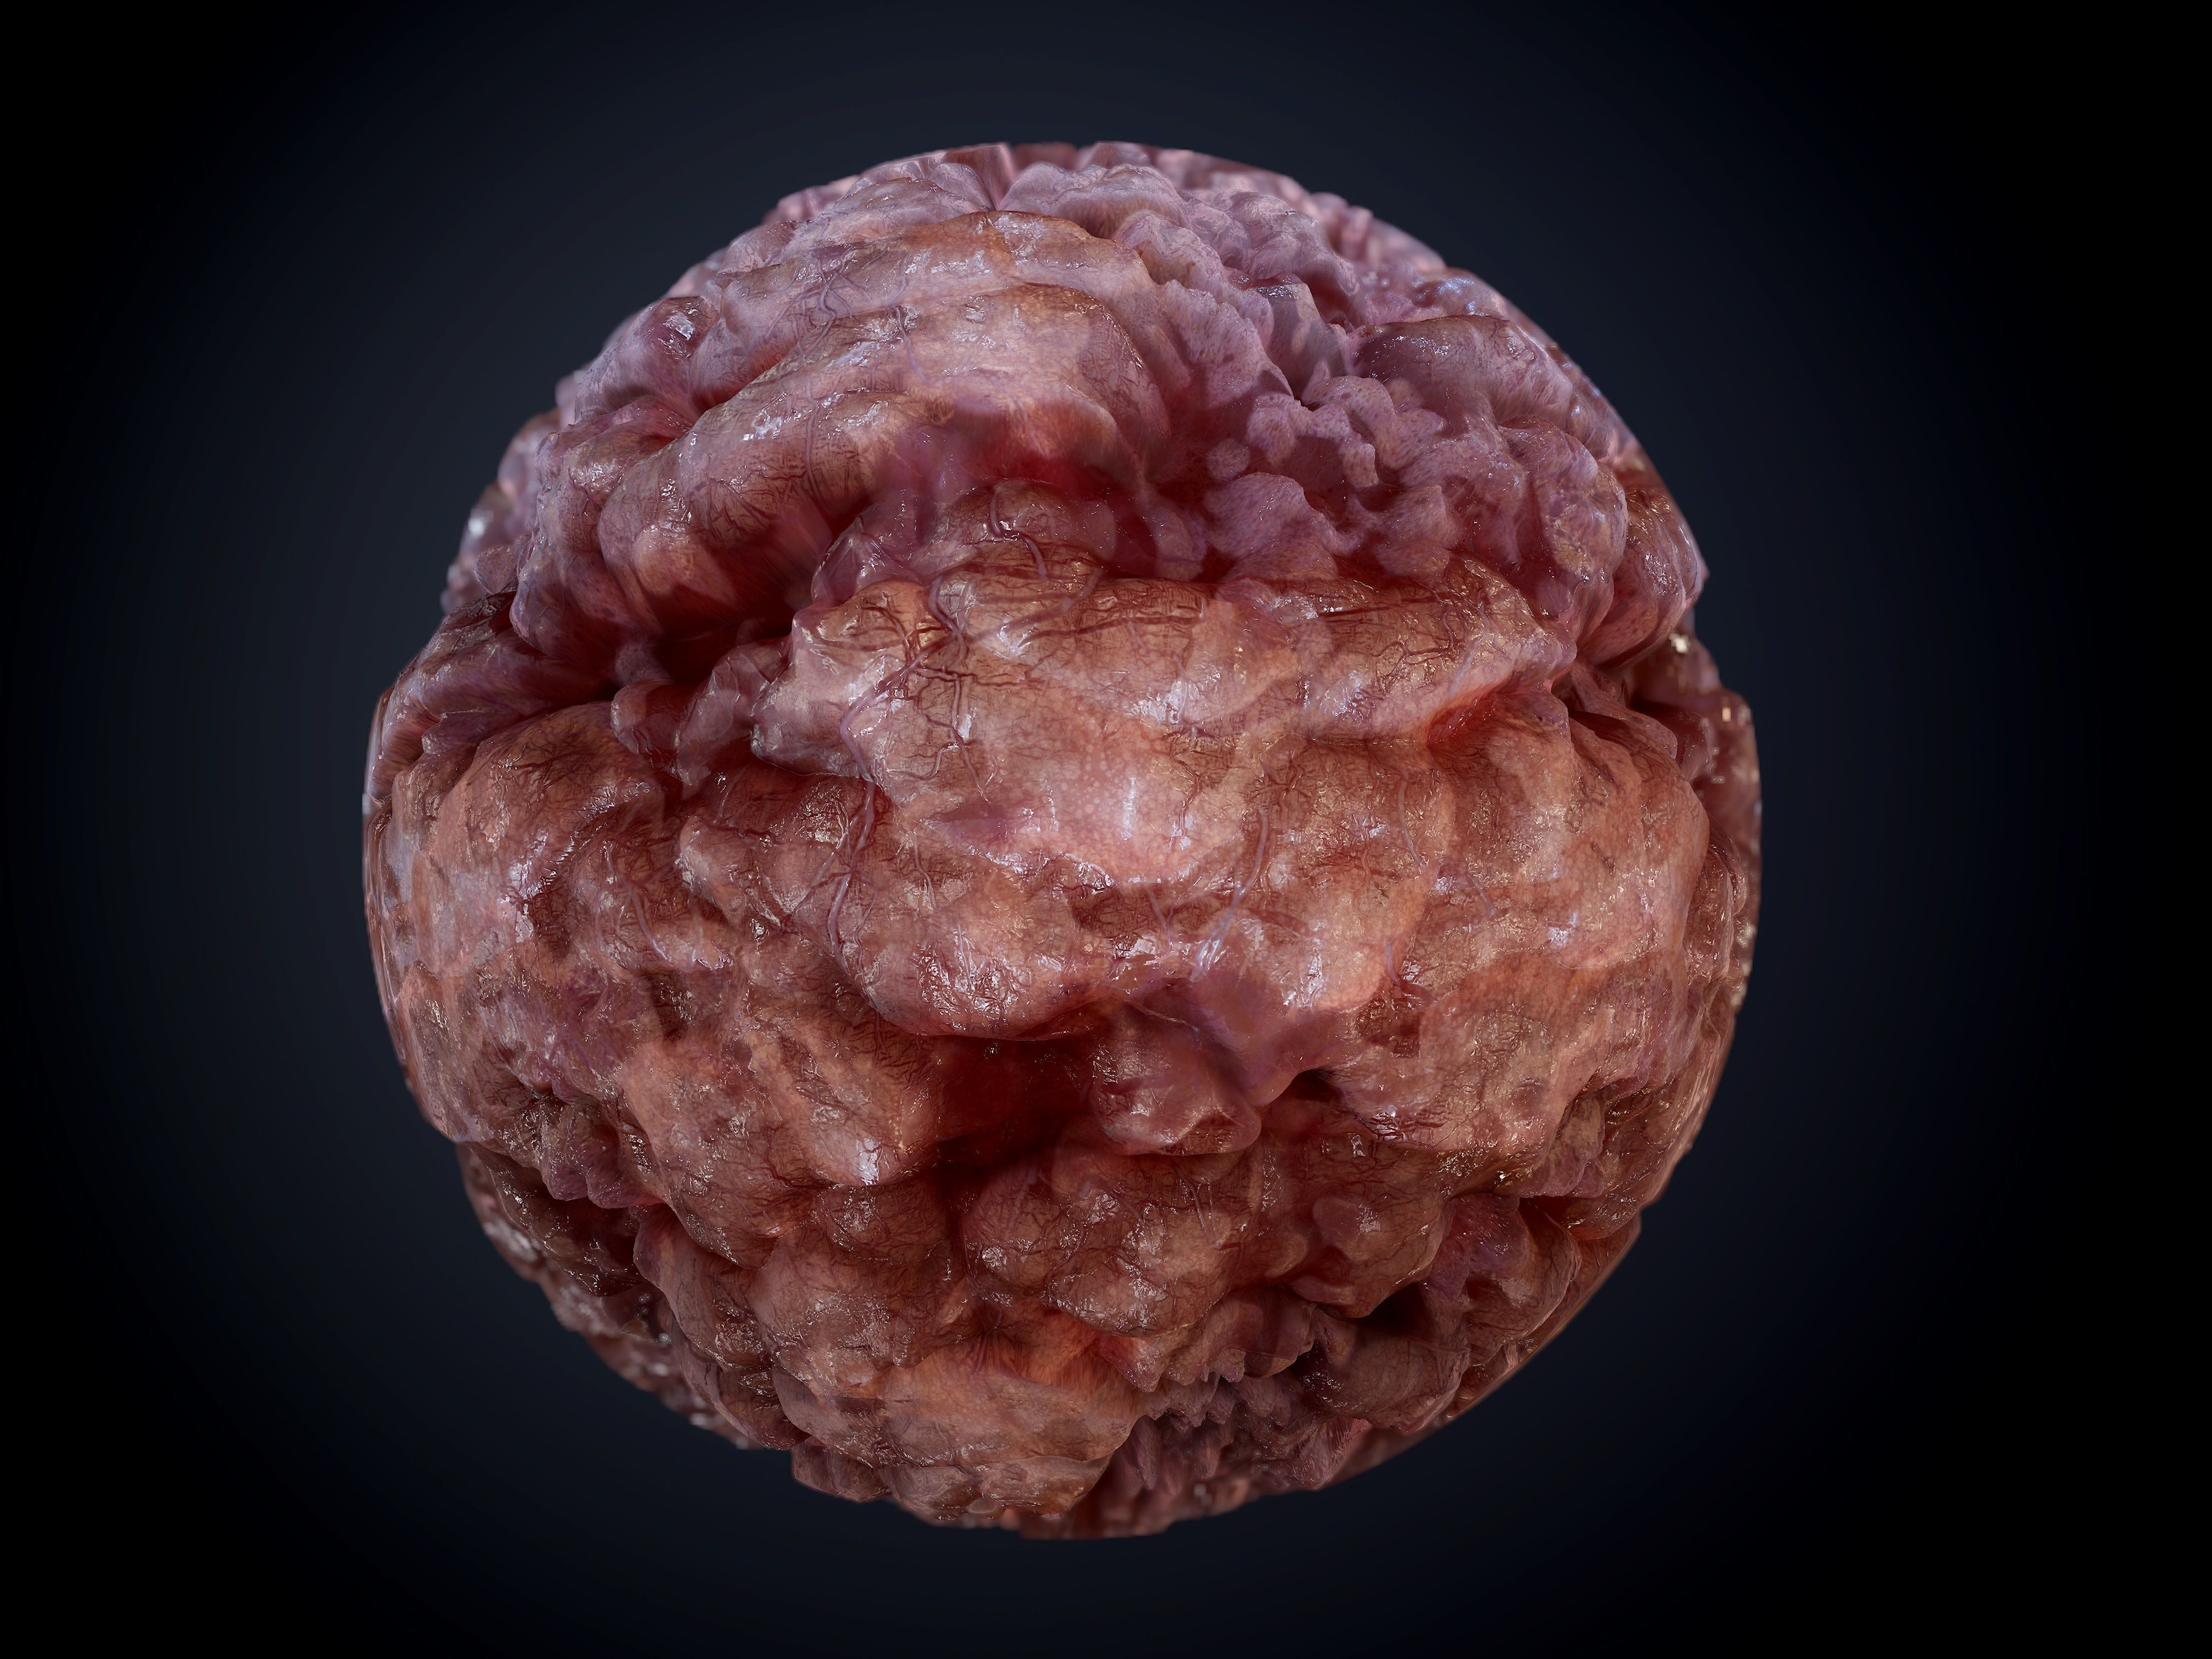 Gore Blood Guts Skin Cuts Seamless Pbr Texture 14 3d Model Veins and reddish spots can be found on the surface. gore blood guts skin cuts seamless pbr texture 14 texture